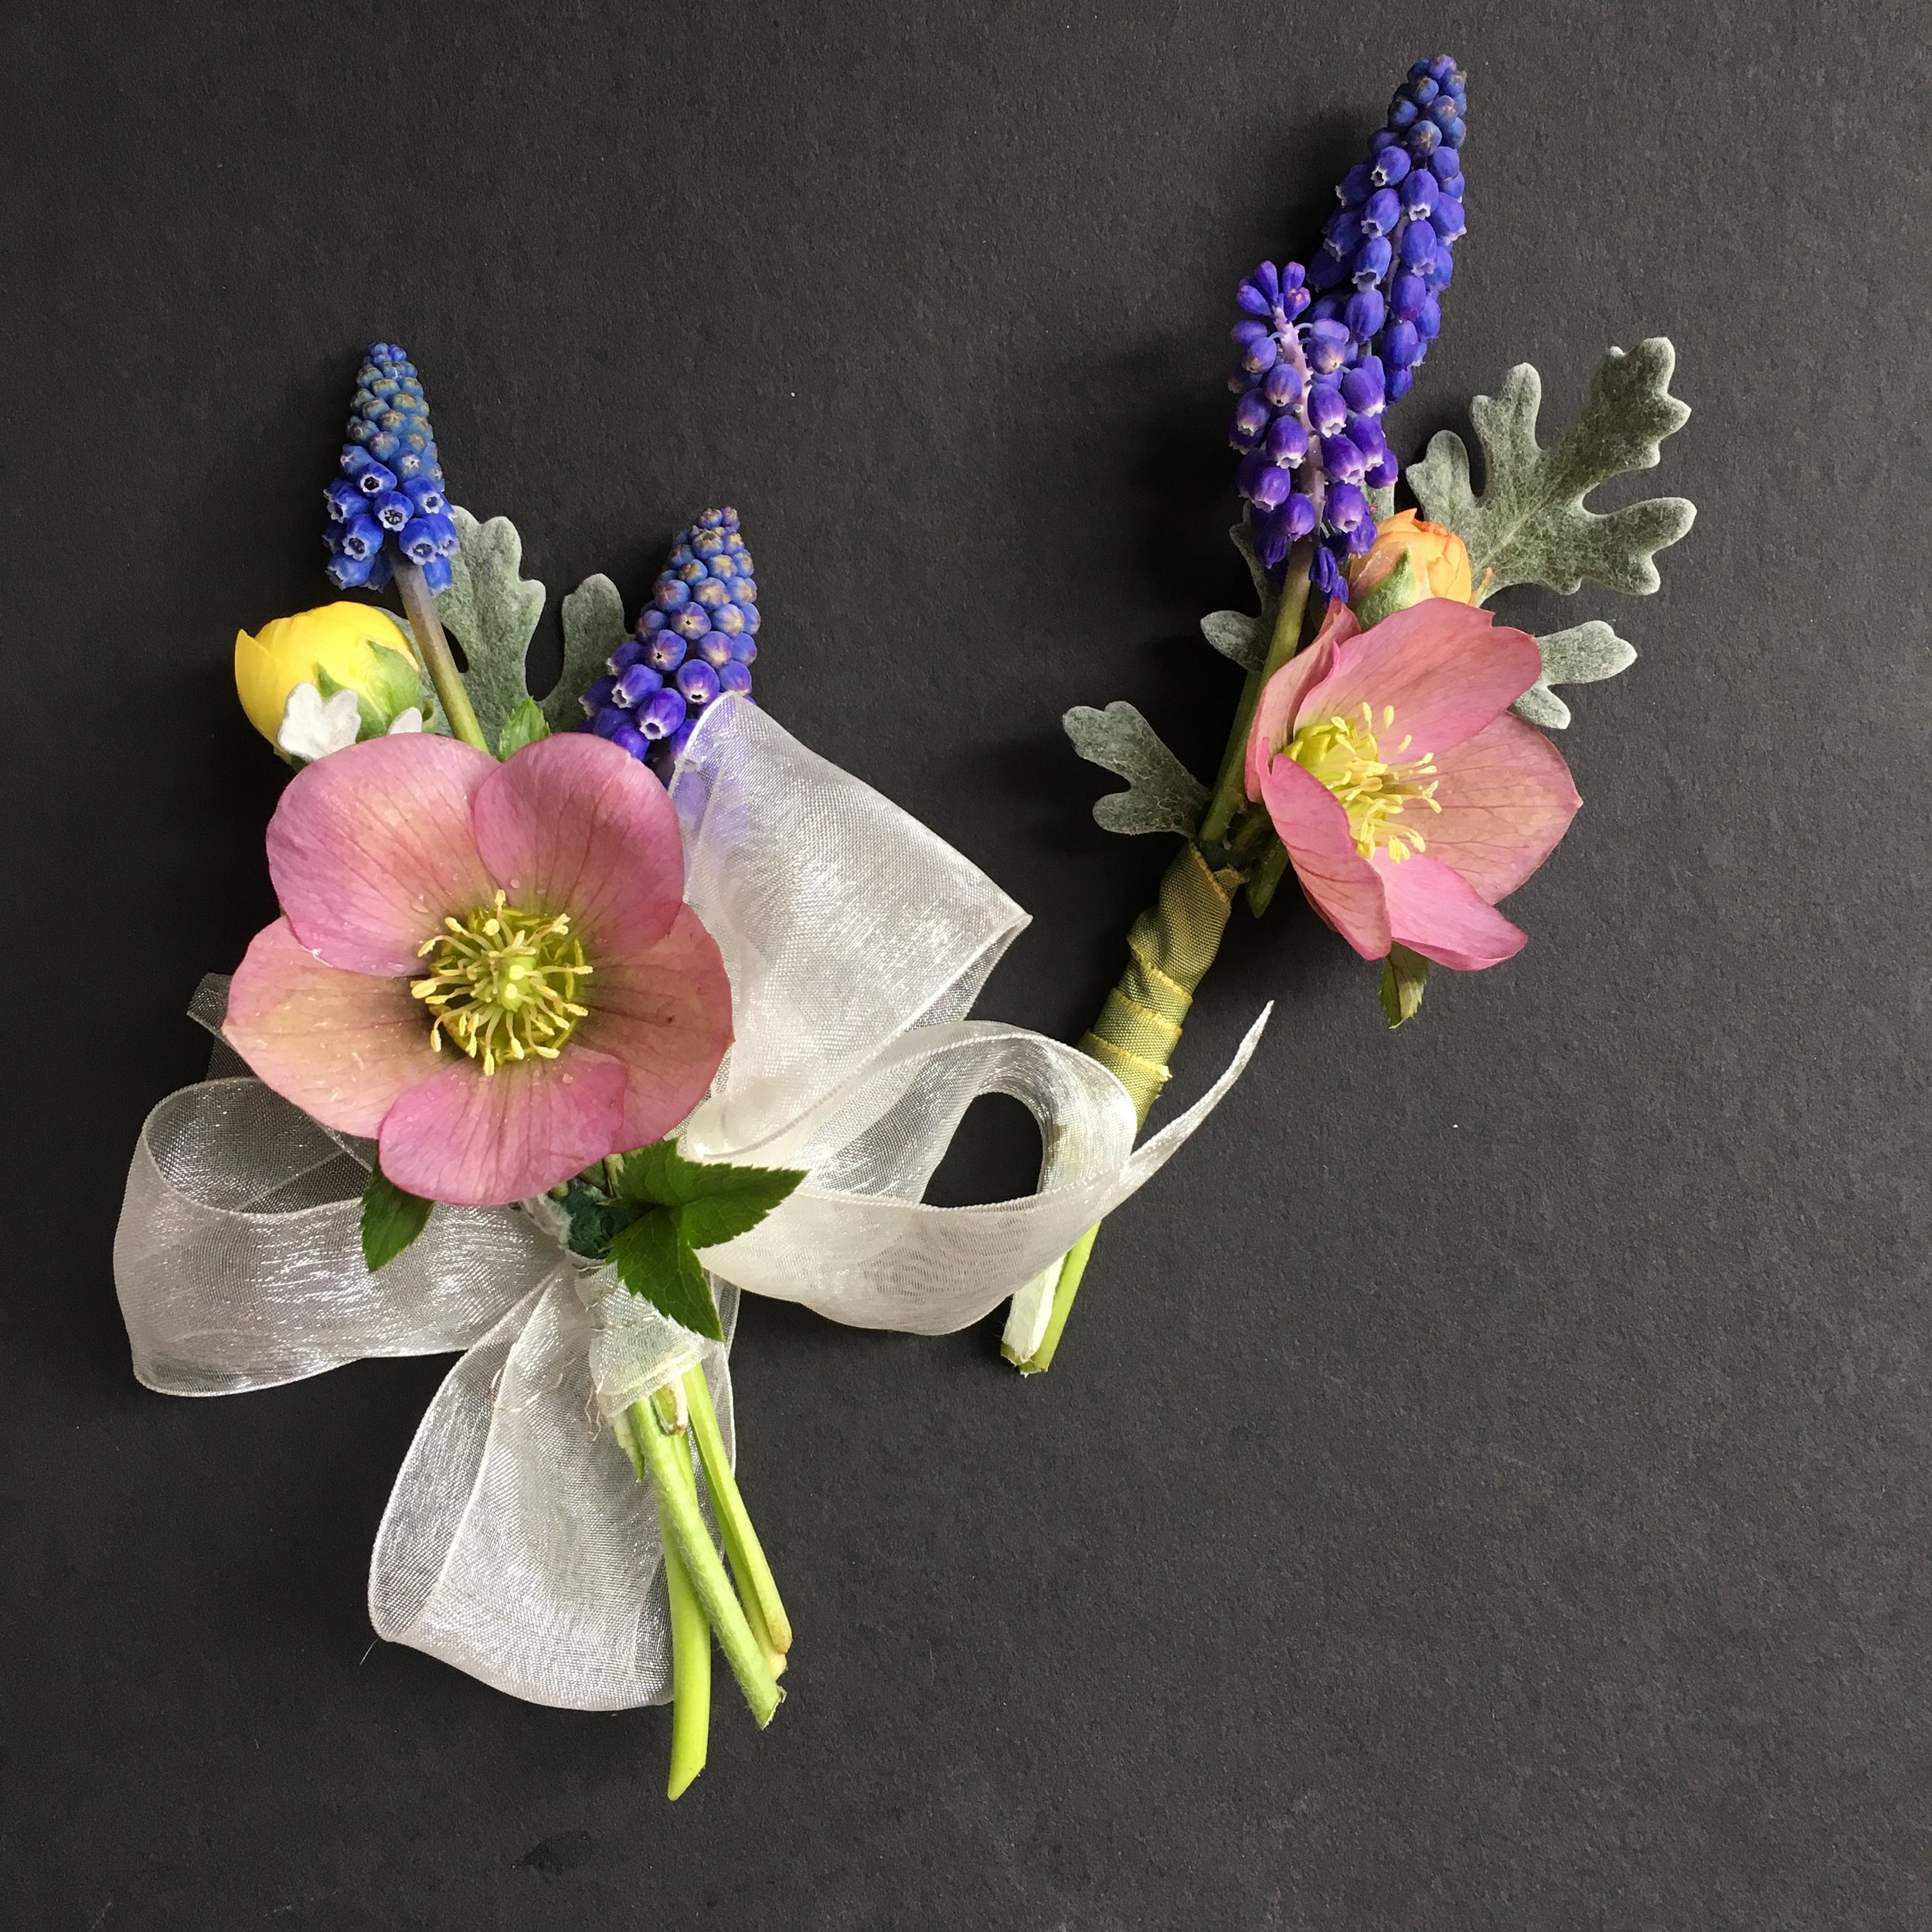 early spring boutonnière and corsage with hellebore, grape hyacinthe and ranunculus buds